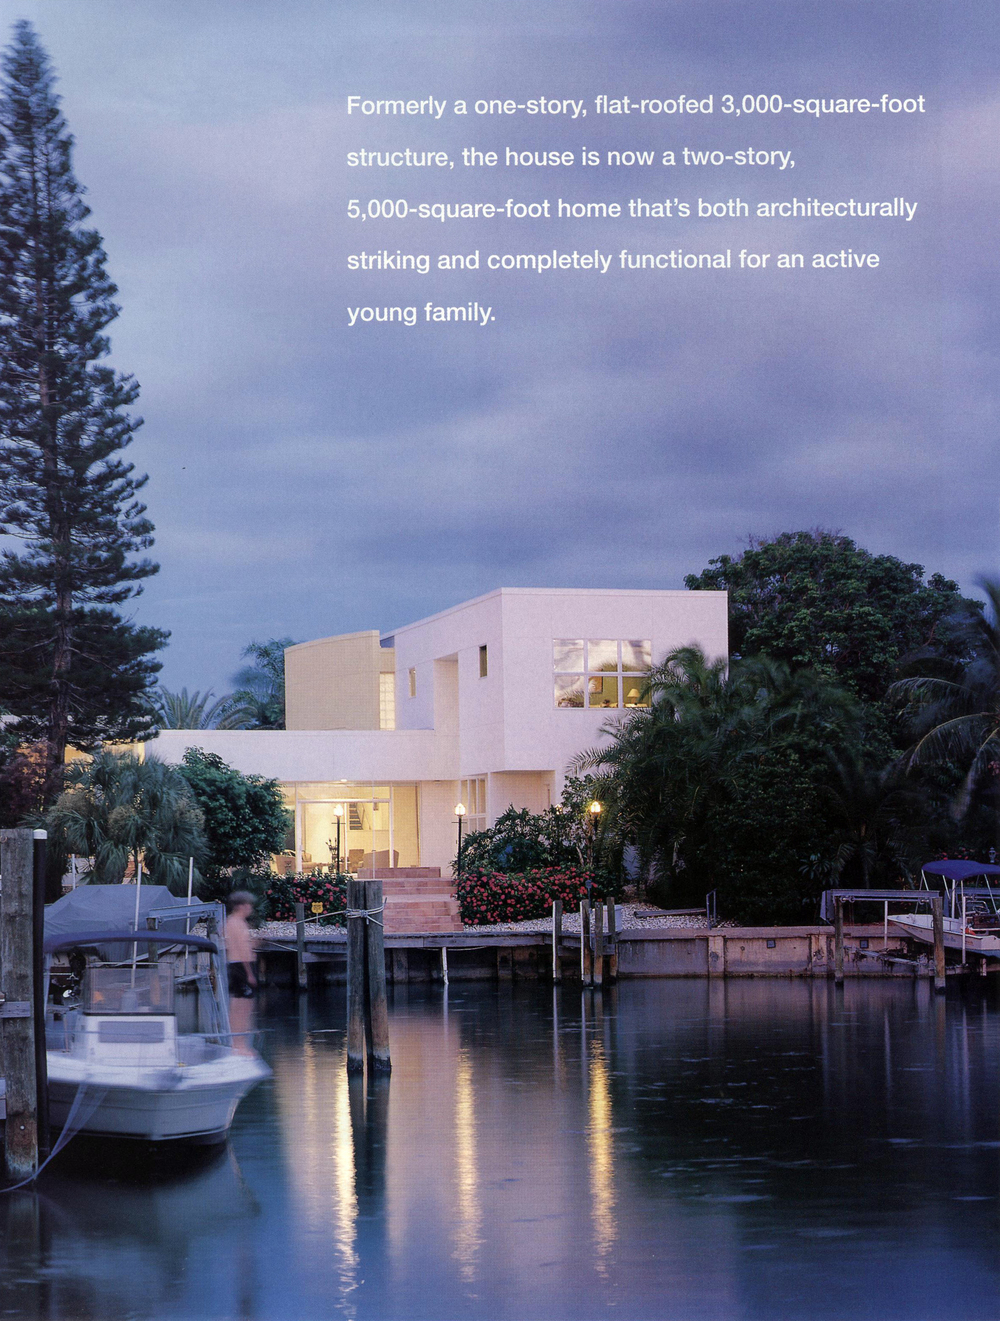 Sarasota Magazine 1999 (Publications) 002 SC-13.jpg